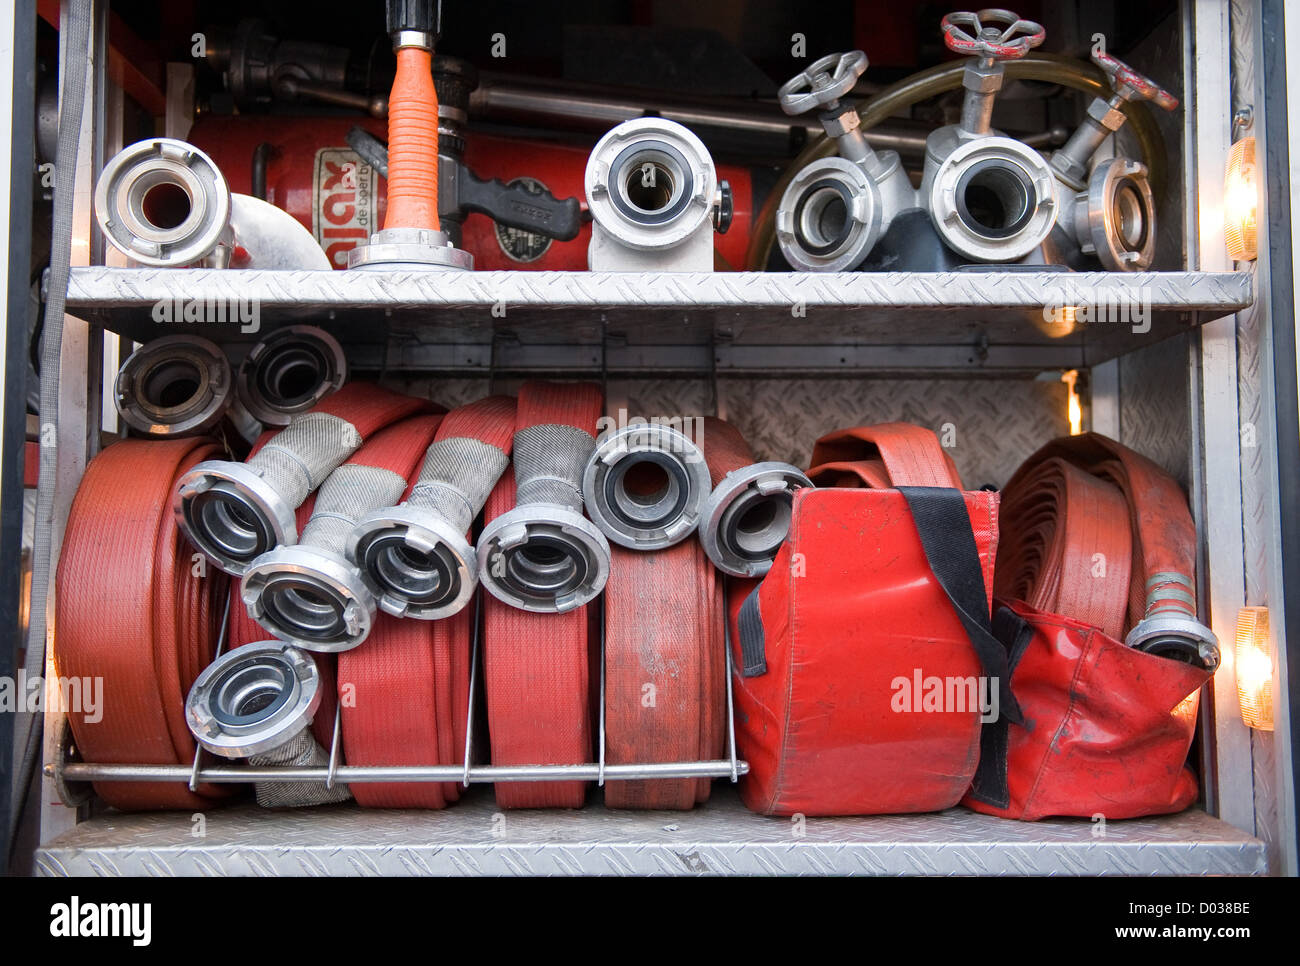 Fire hoses and other equipment in a truck to be used by firefighters - Stock Image